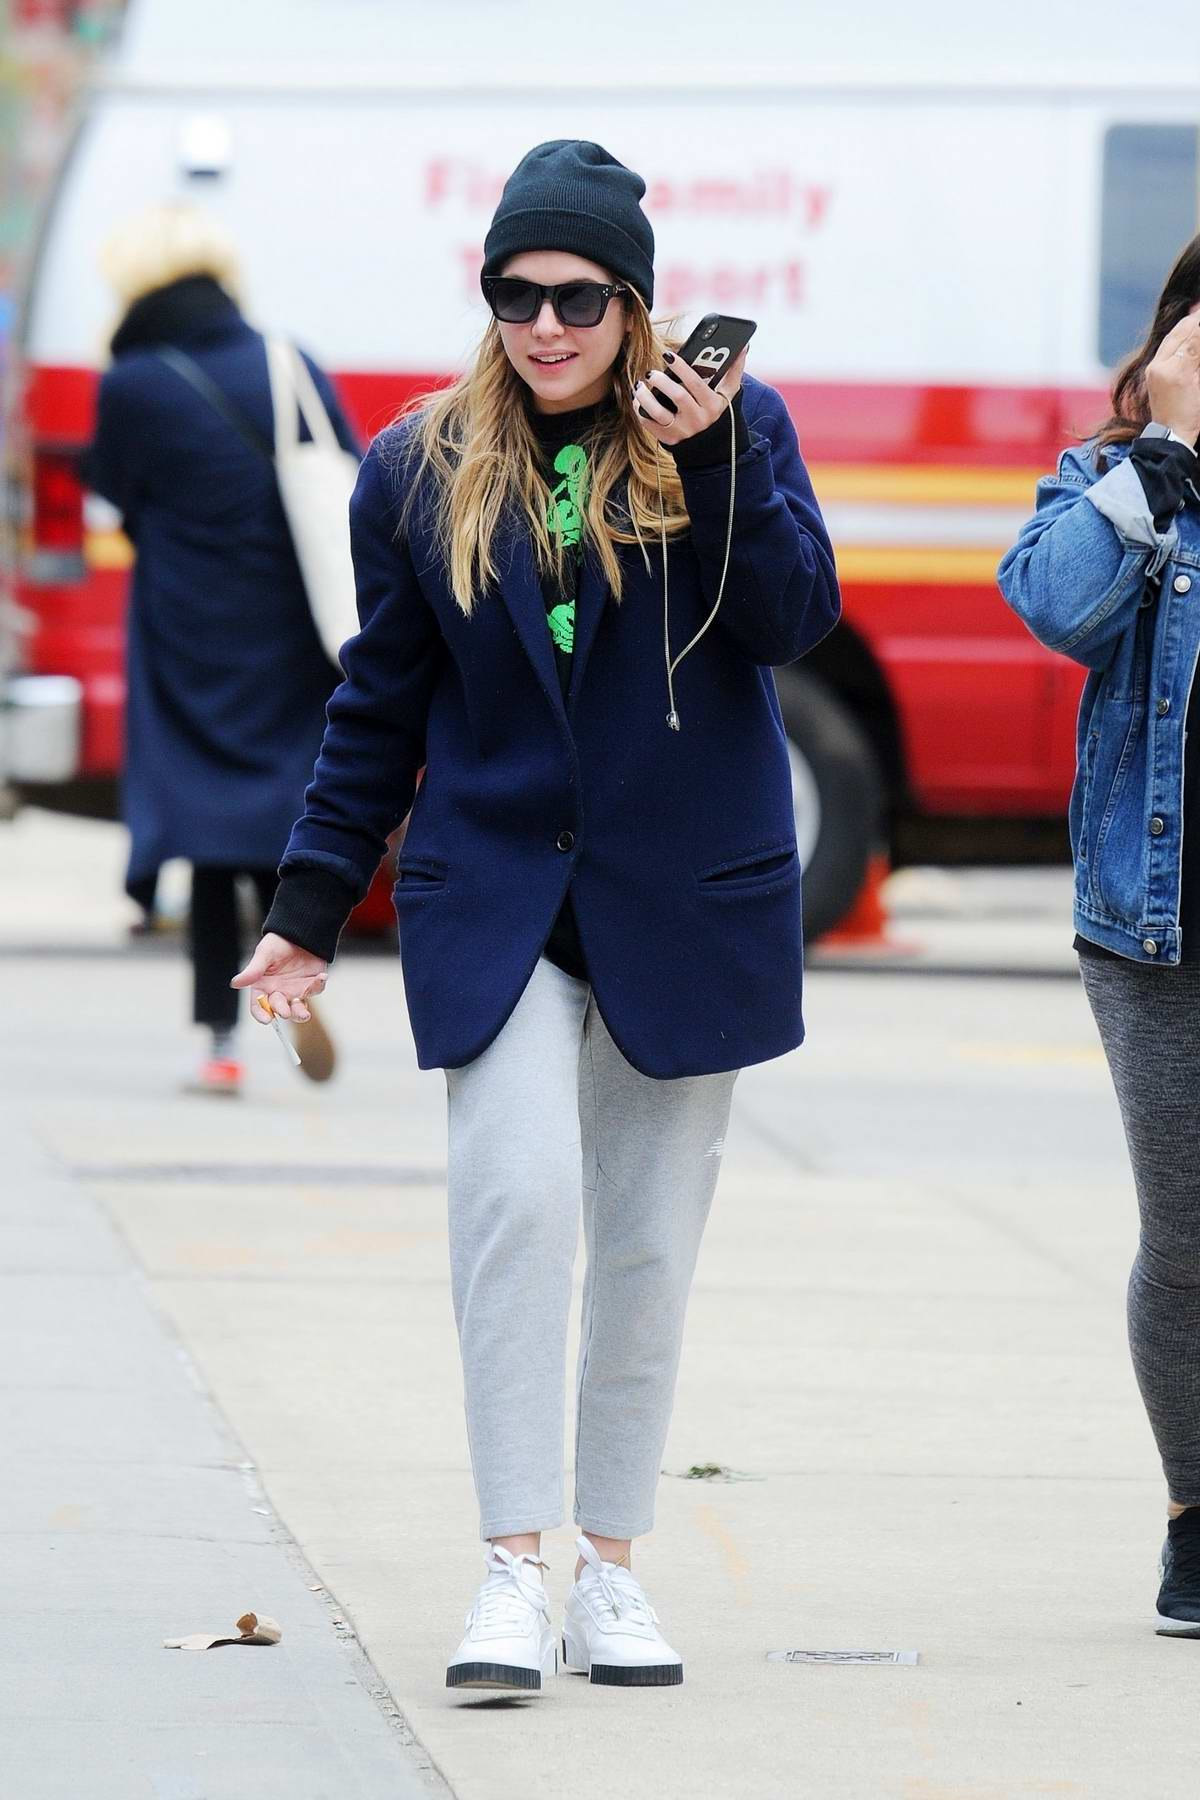 Ashley Benson grabs a smoke while out for a stroll with a friend in New York City